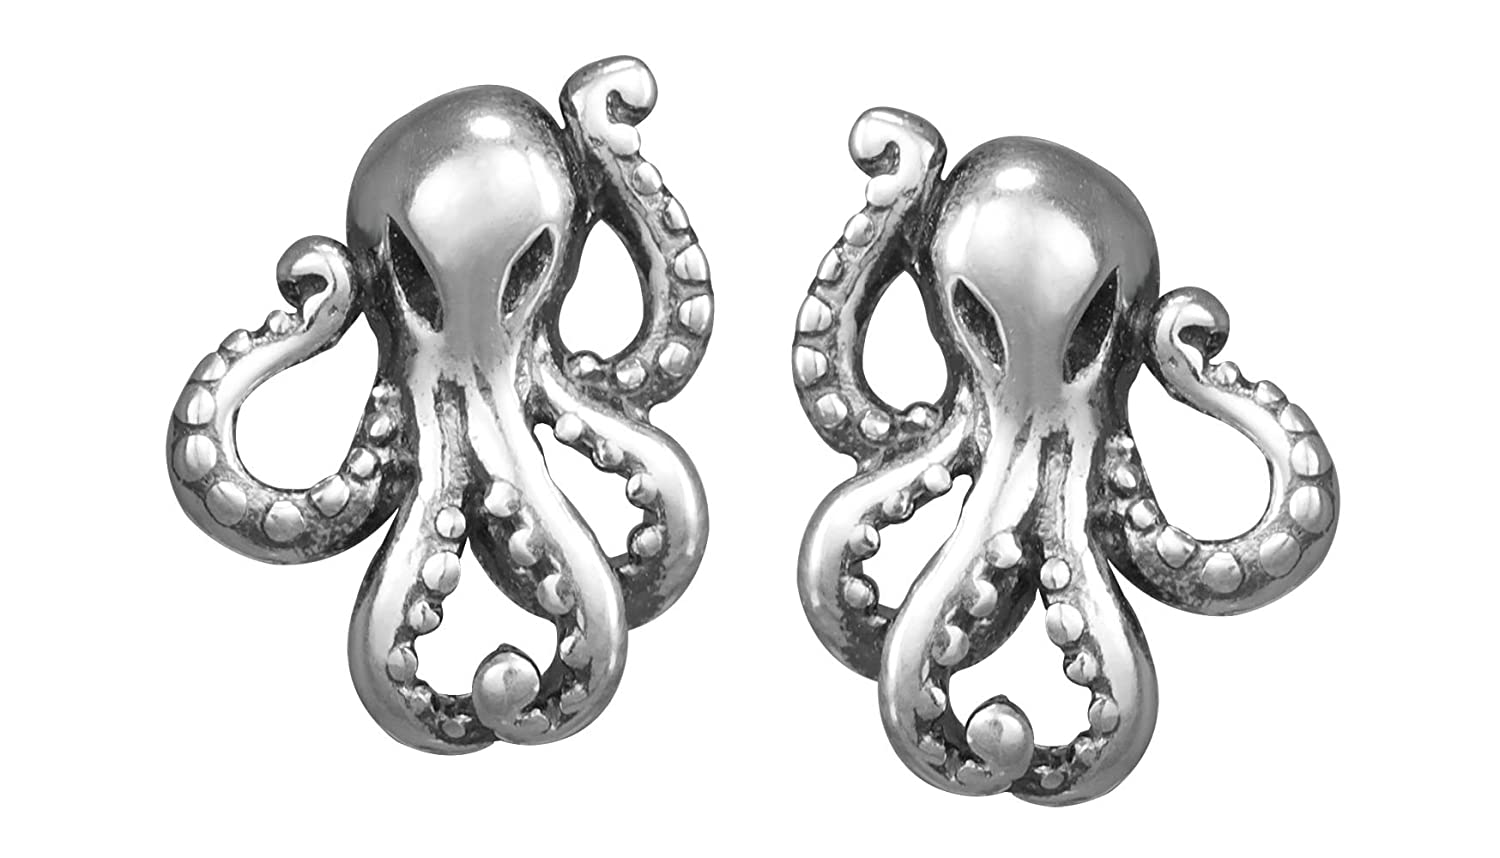 023f5fc2a9e68 Boma Jewelry Sterling Silver Octopus Stud Earrings